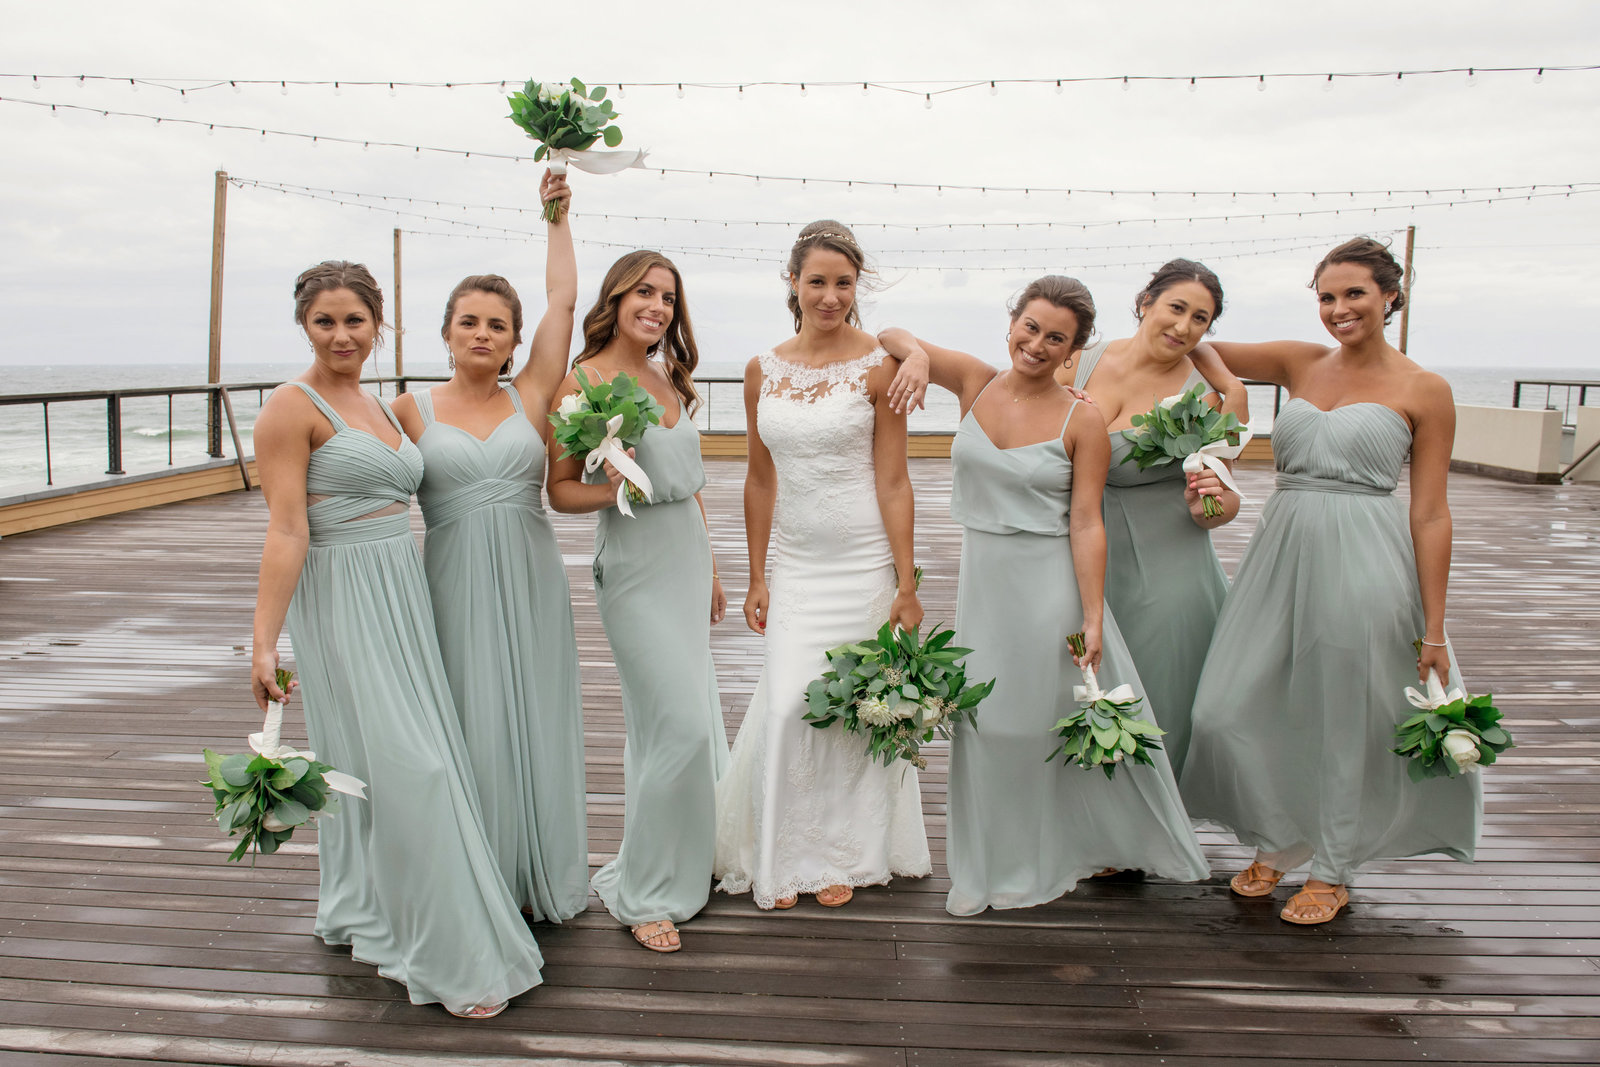 photo of bridesmaids with bride on boardwalk from  Gurneys Montauk Resort wedding